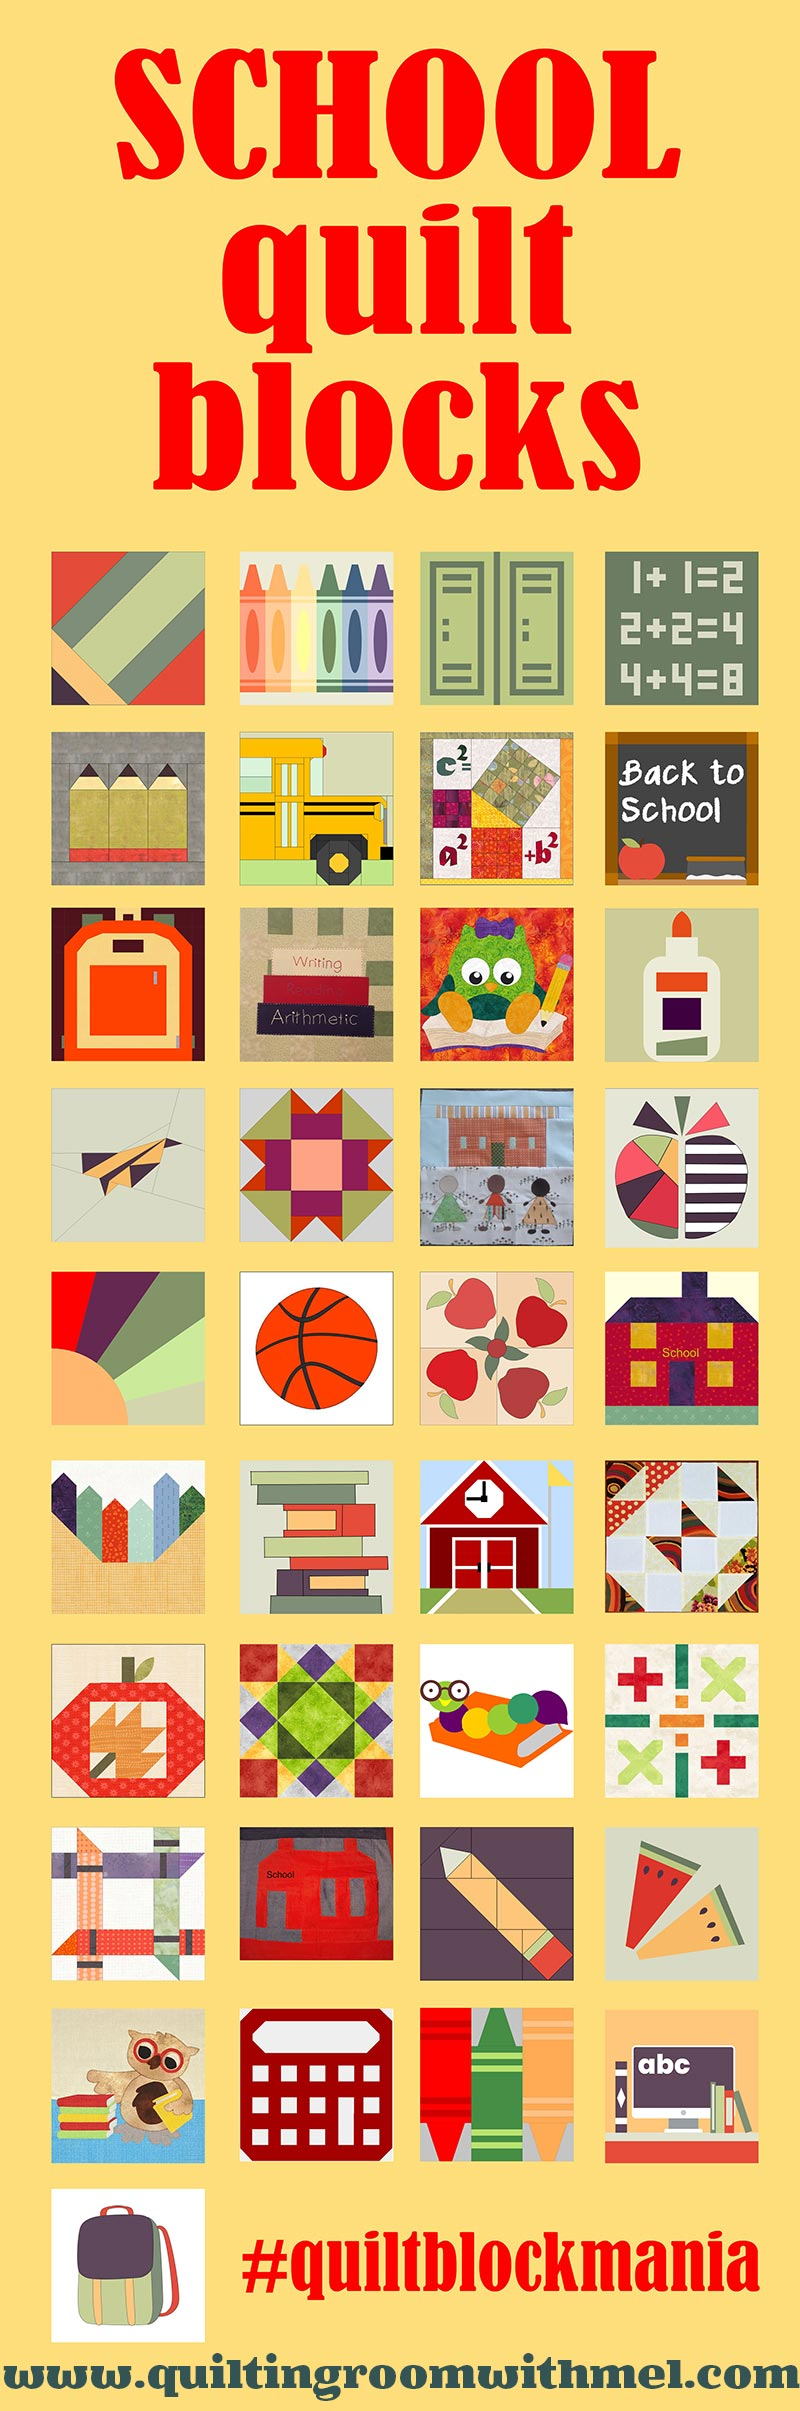 Join me and 37 other quilt designers for a quilt block mania! 38 free quilt blocks with the back to school theme